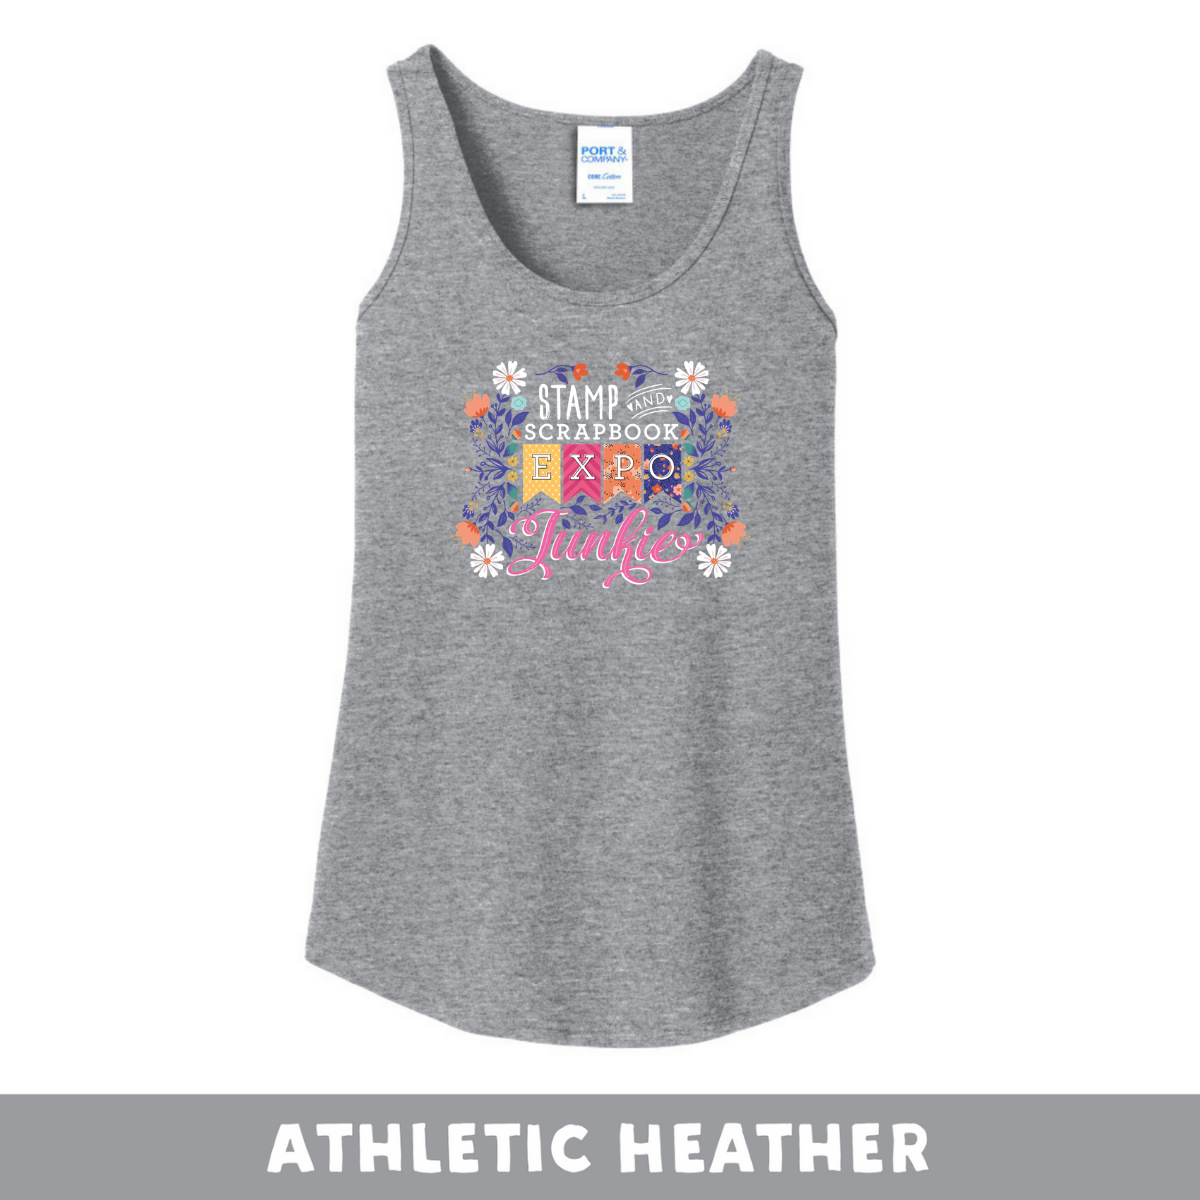 Athletic Heather -  Woman's Cut Tank - SSBE Junkie With/Flowers